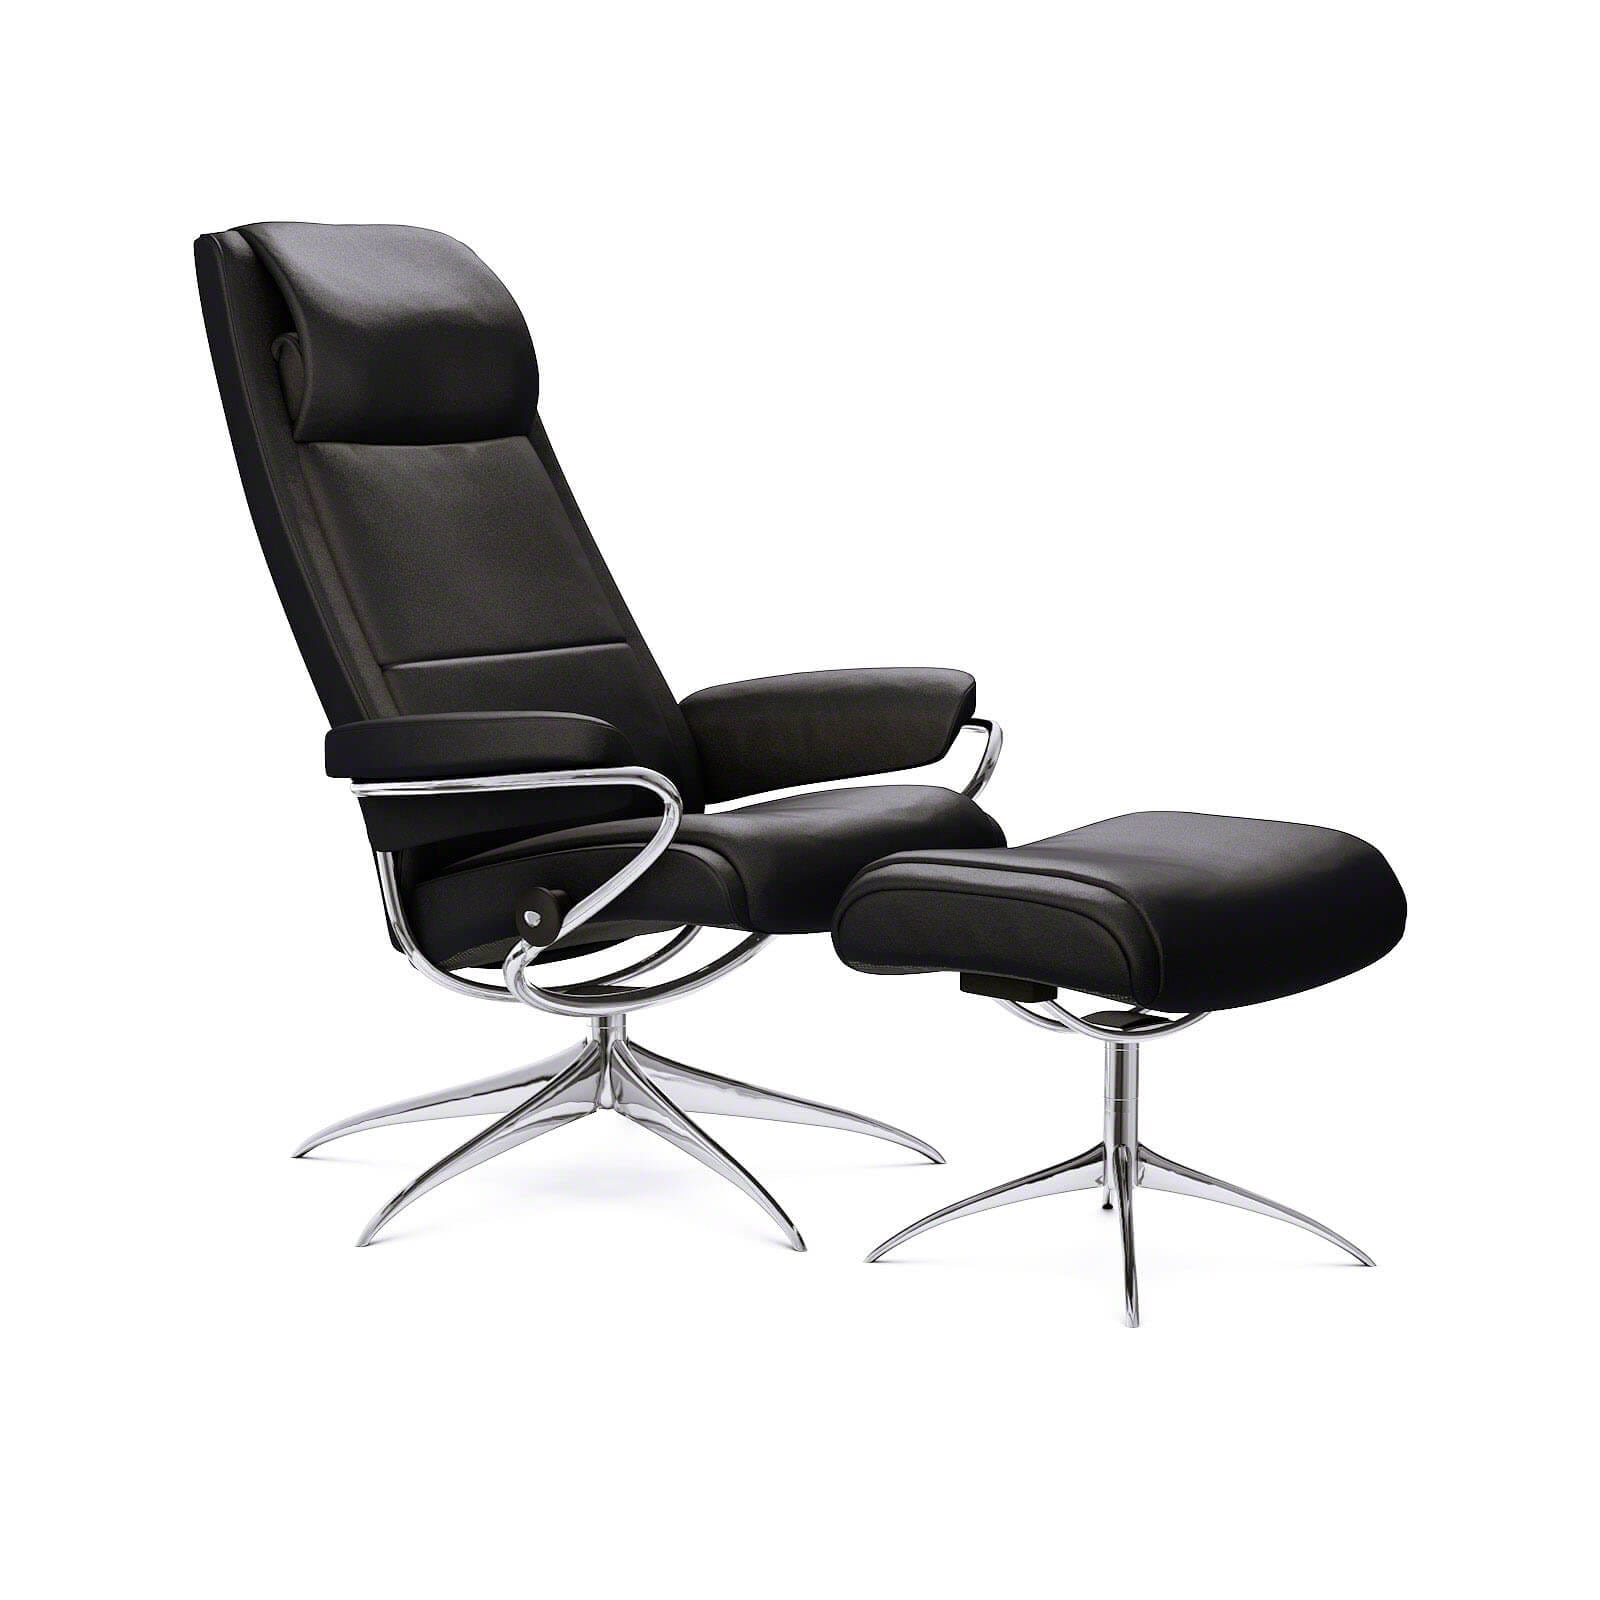 Stressless Sessel Paris High Back Stressless Ledersessel Paris Hohe Lehne Paloma Schwarz